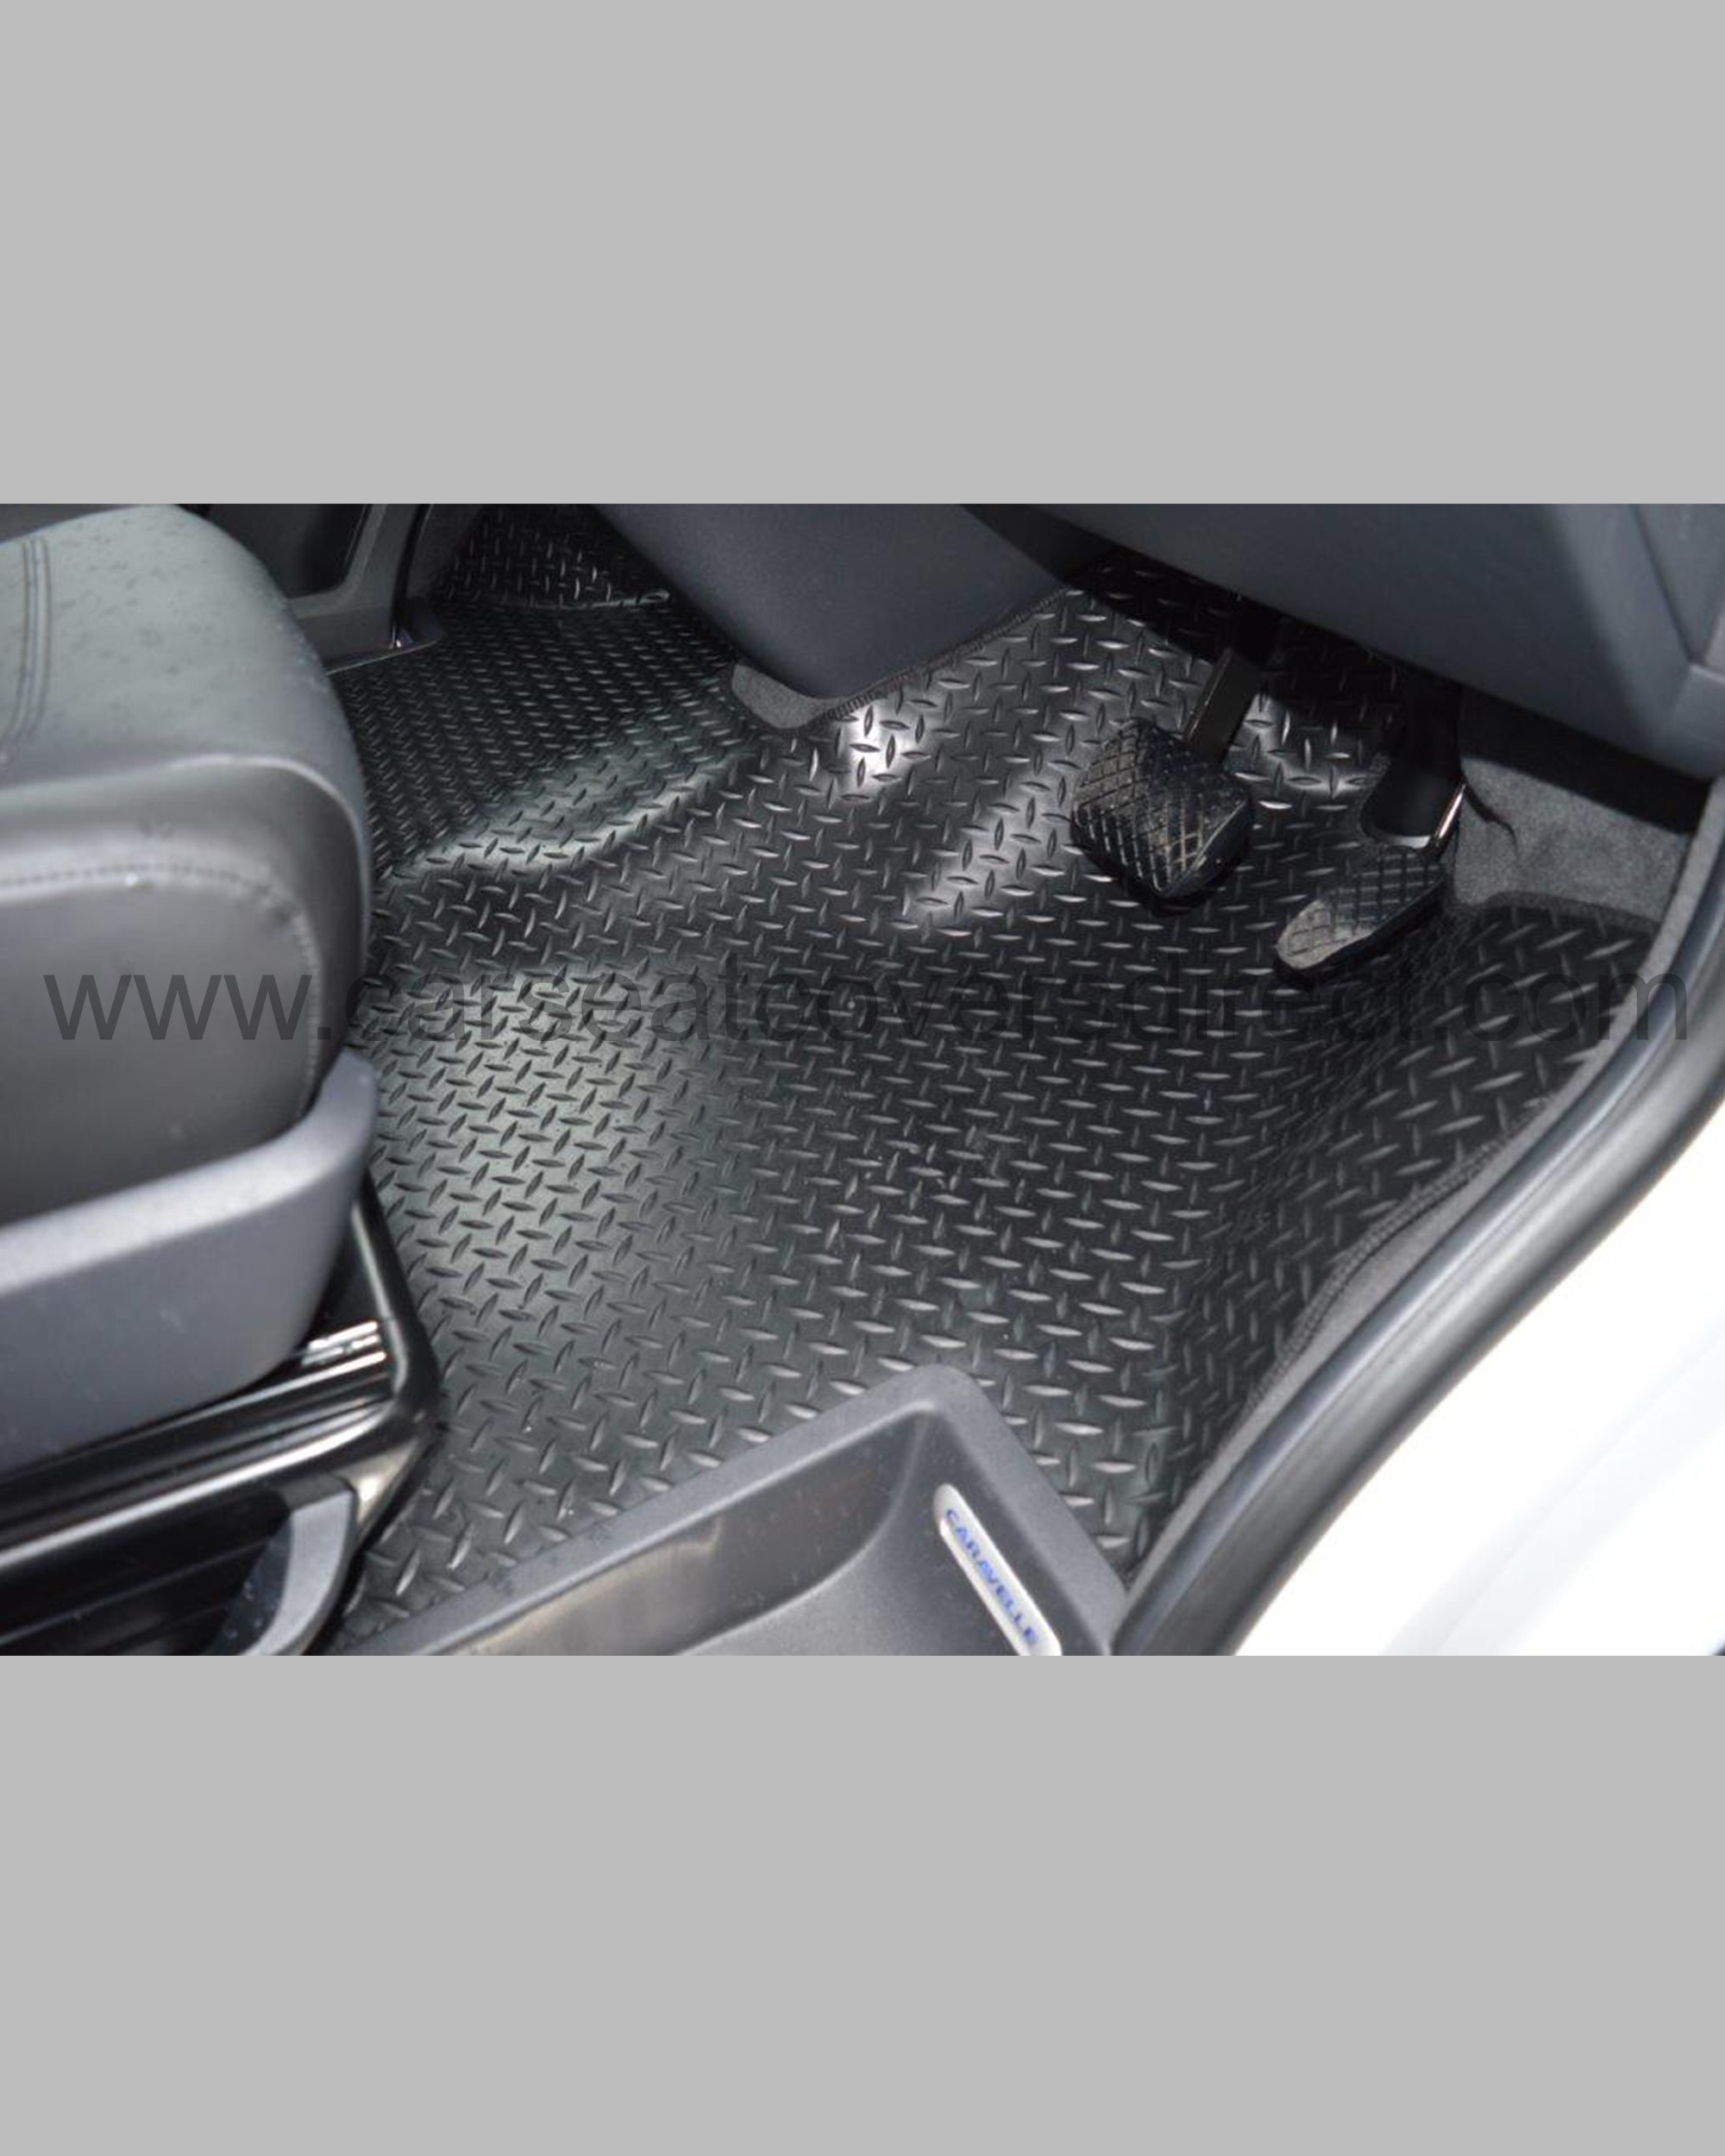 all ip hd mats com walmart truck armor floor mat car full black coverage rubber